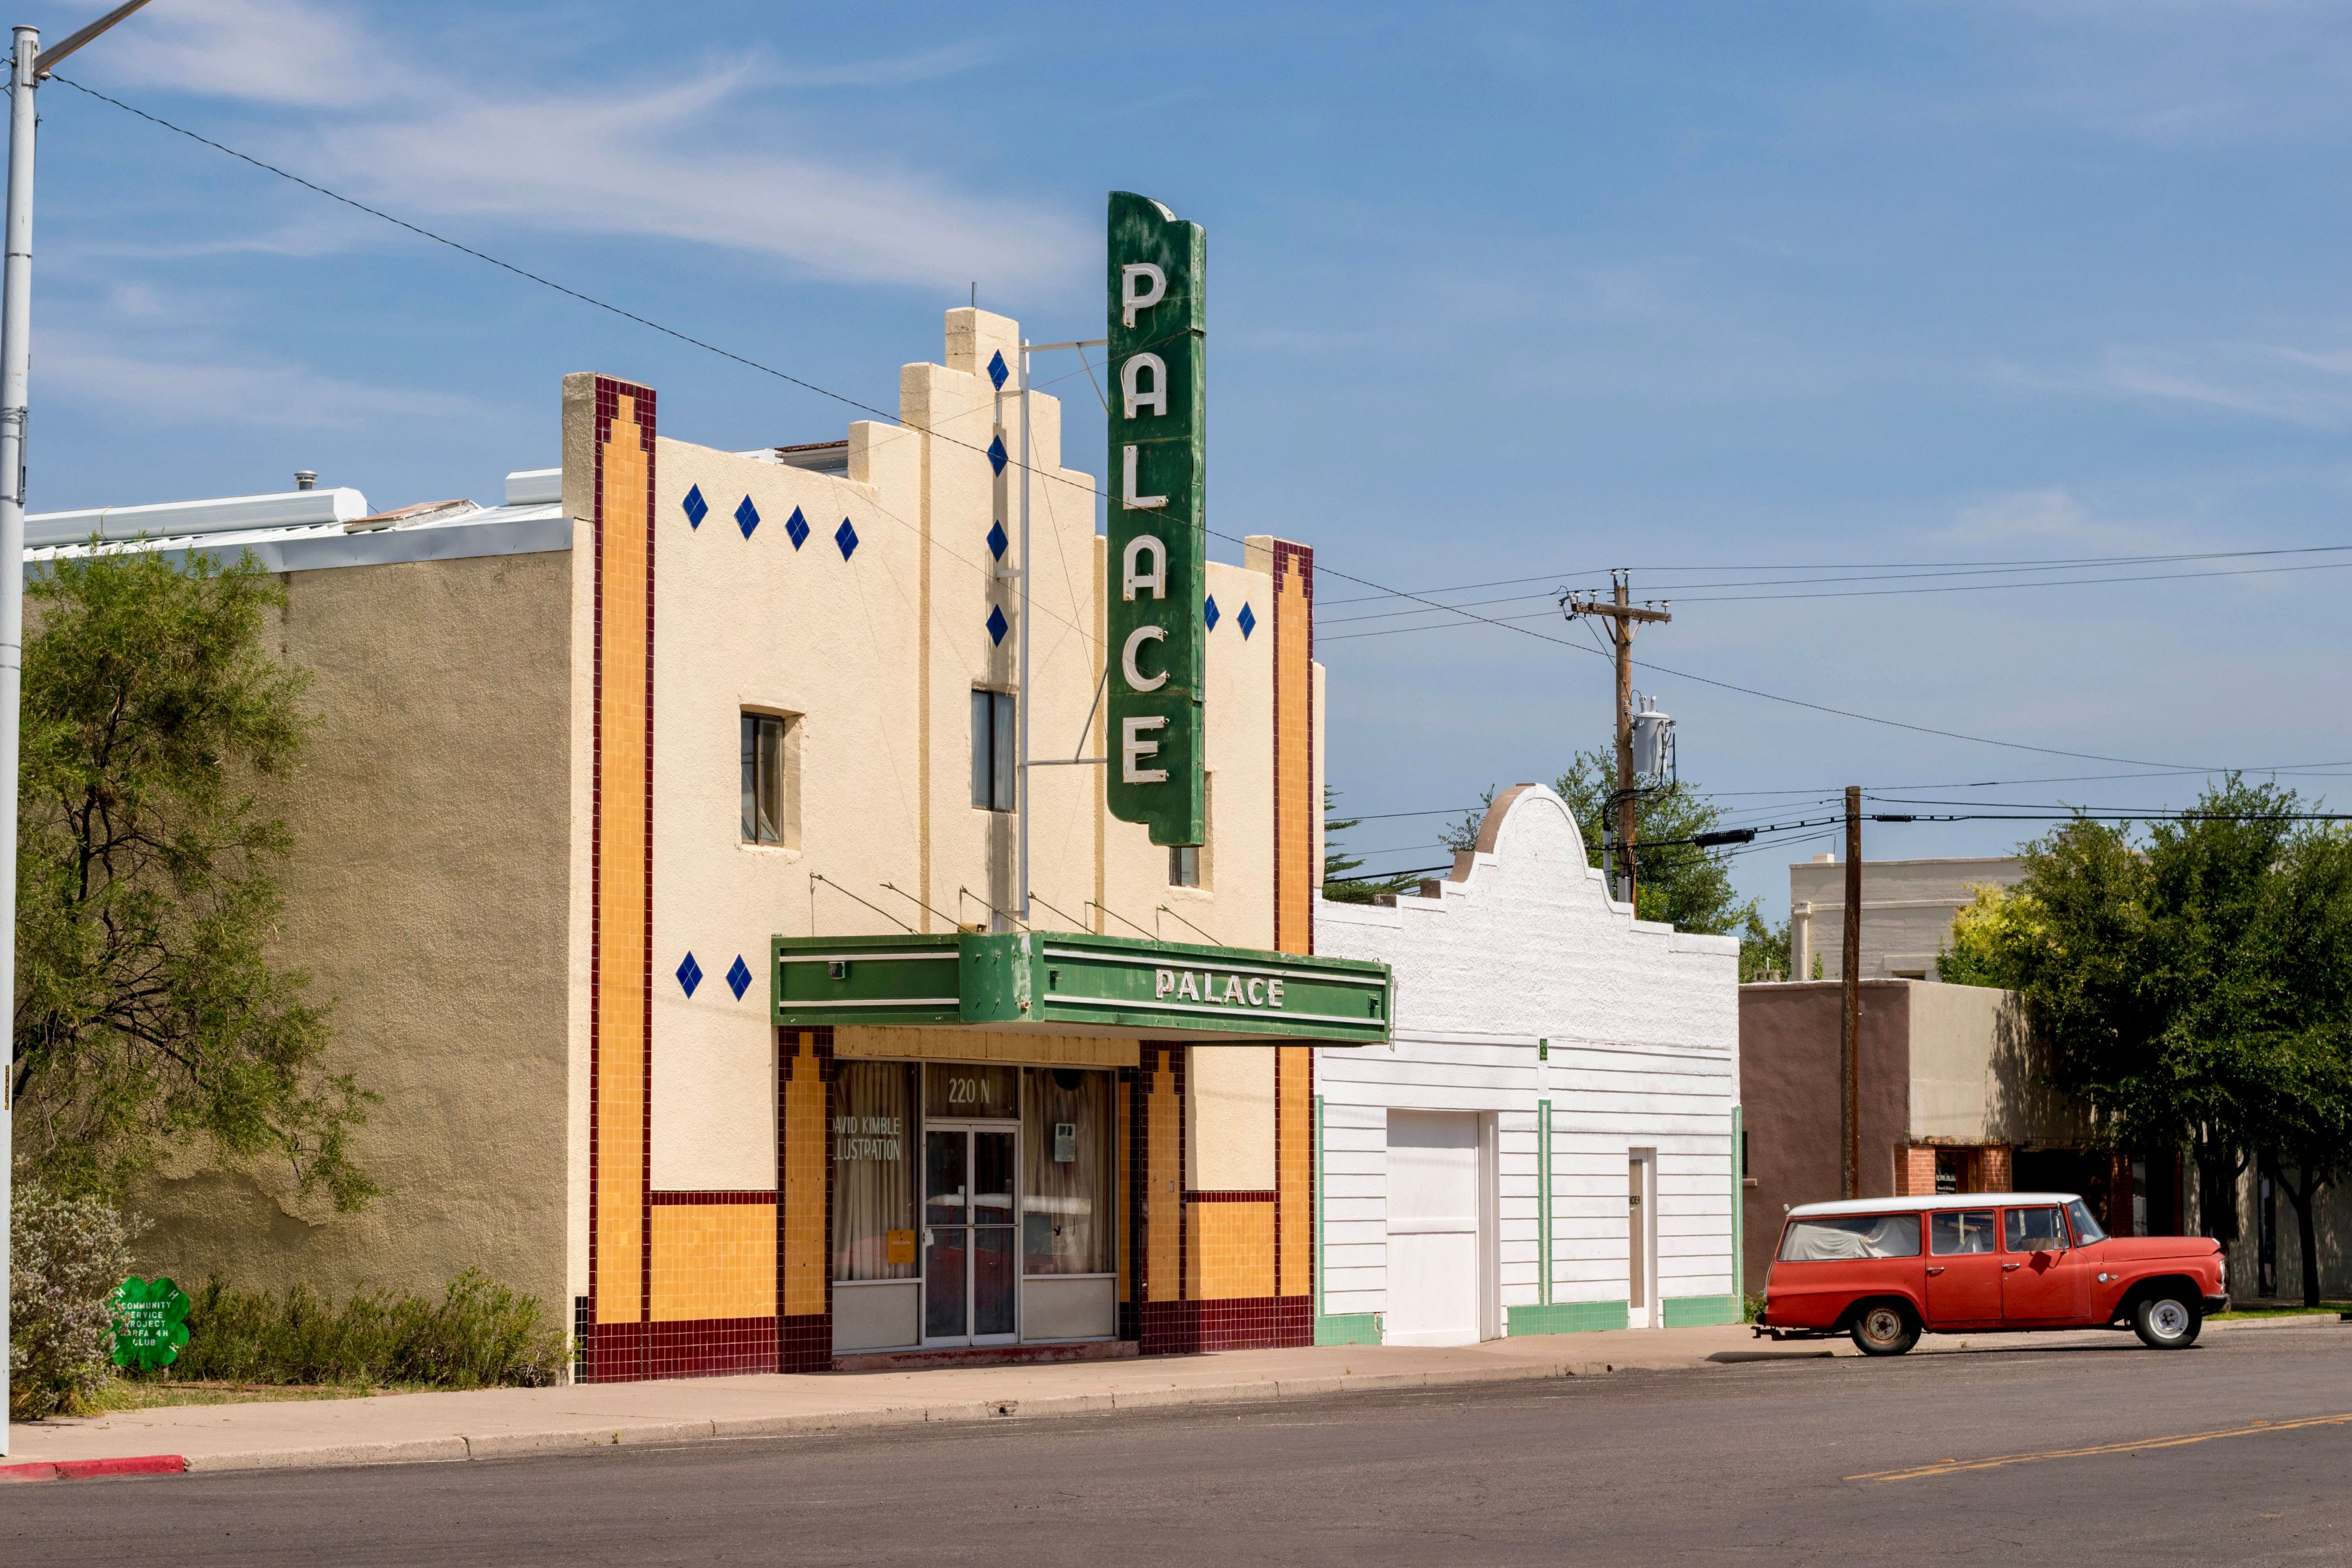 Slide 10 of 23: Palace theater marfa; Shutterstock ID 1146165182; Purchase Order: -